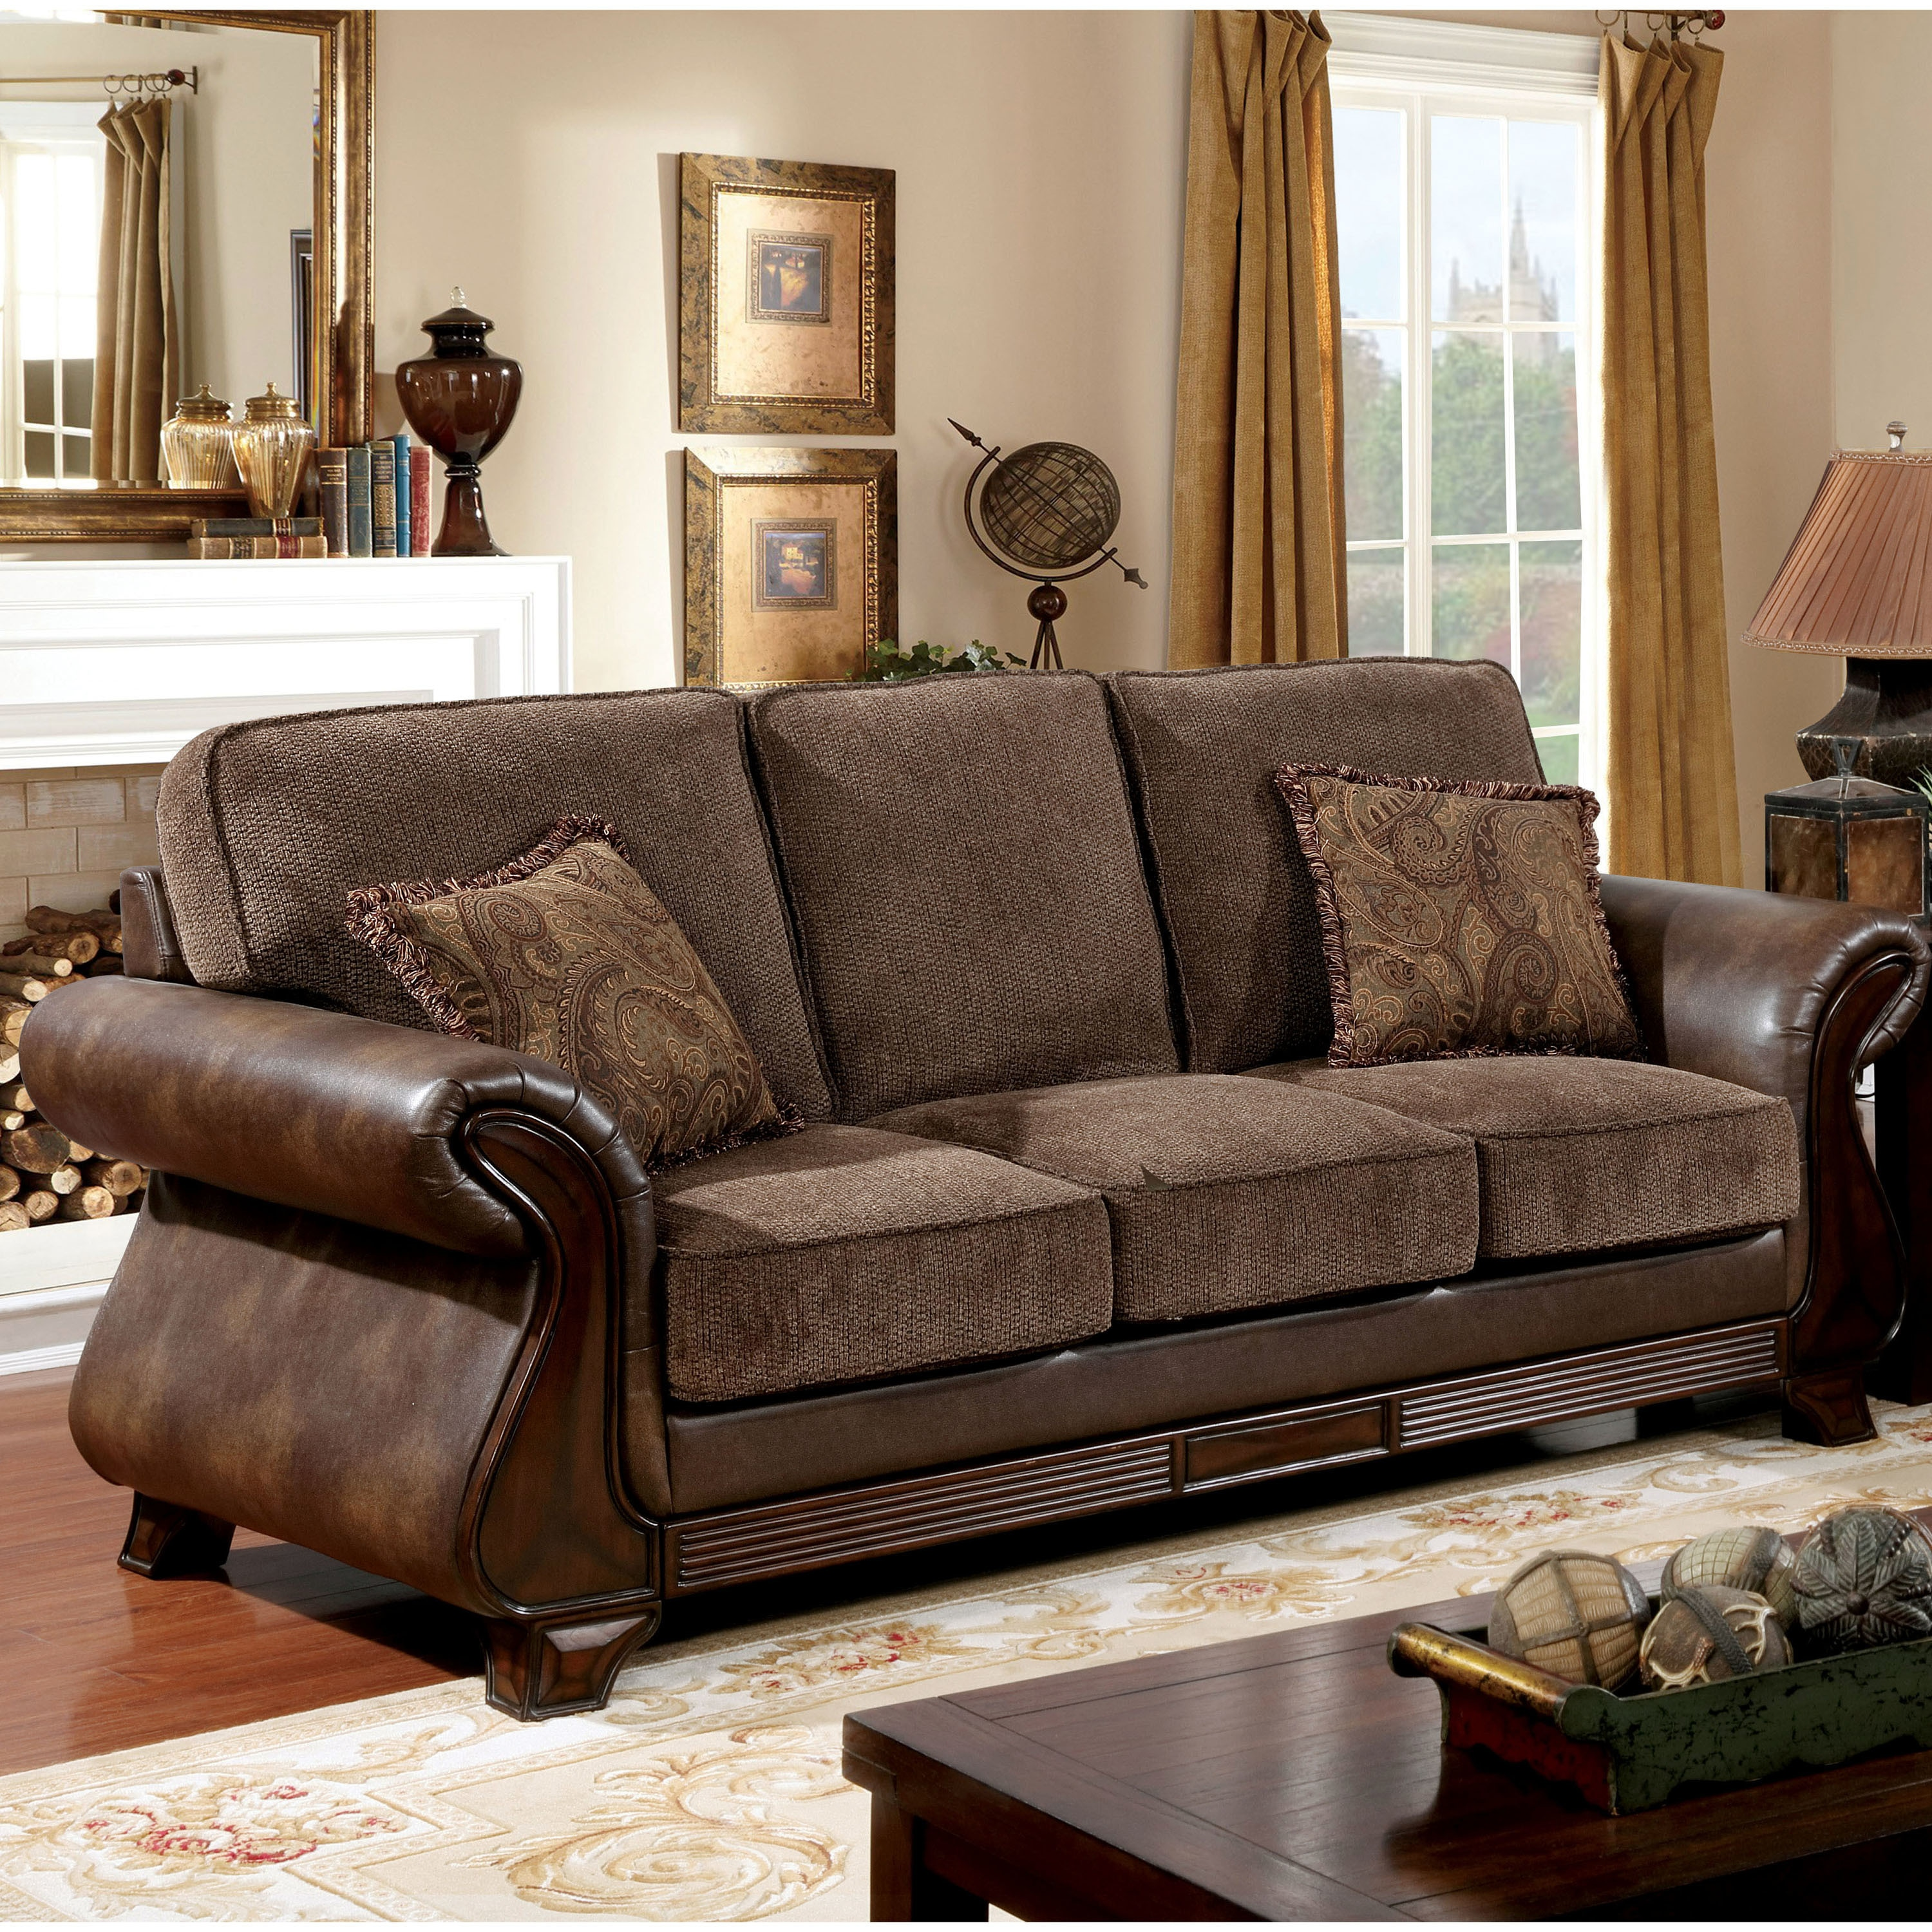 Accent Chairs To Go With Brown Leather Sofa Furniture Of America Elyna Microfiber And Brown Leather Sofa